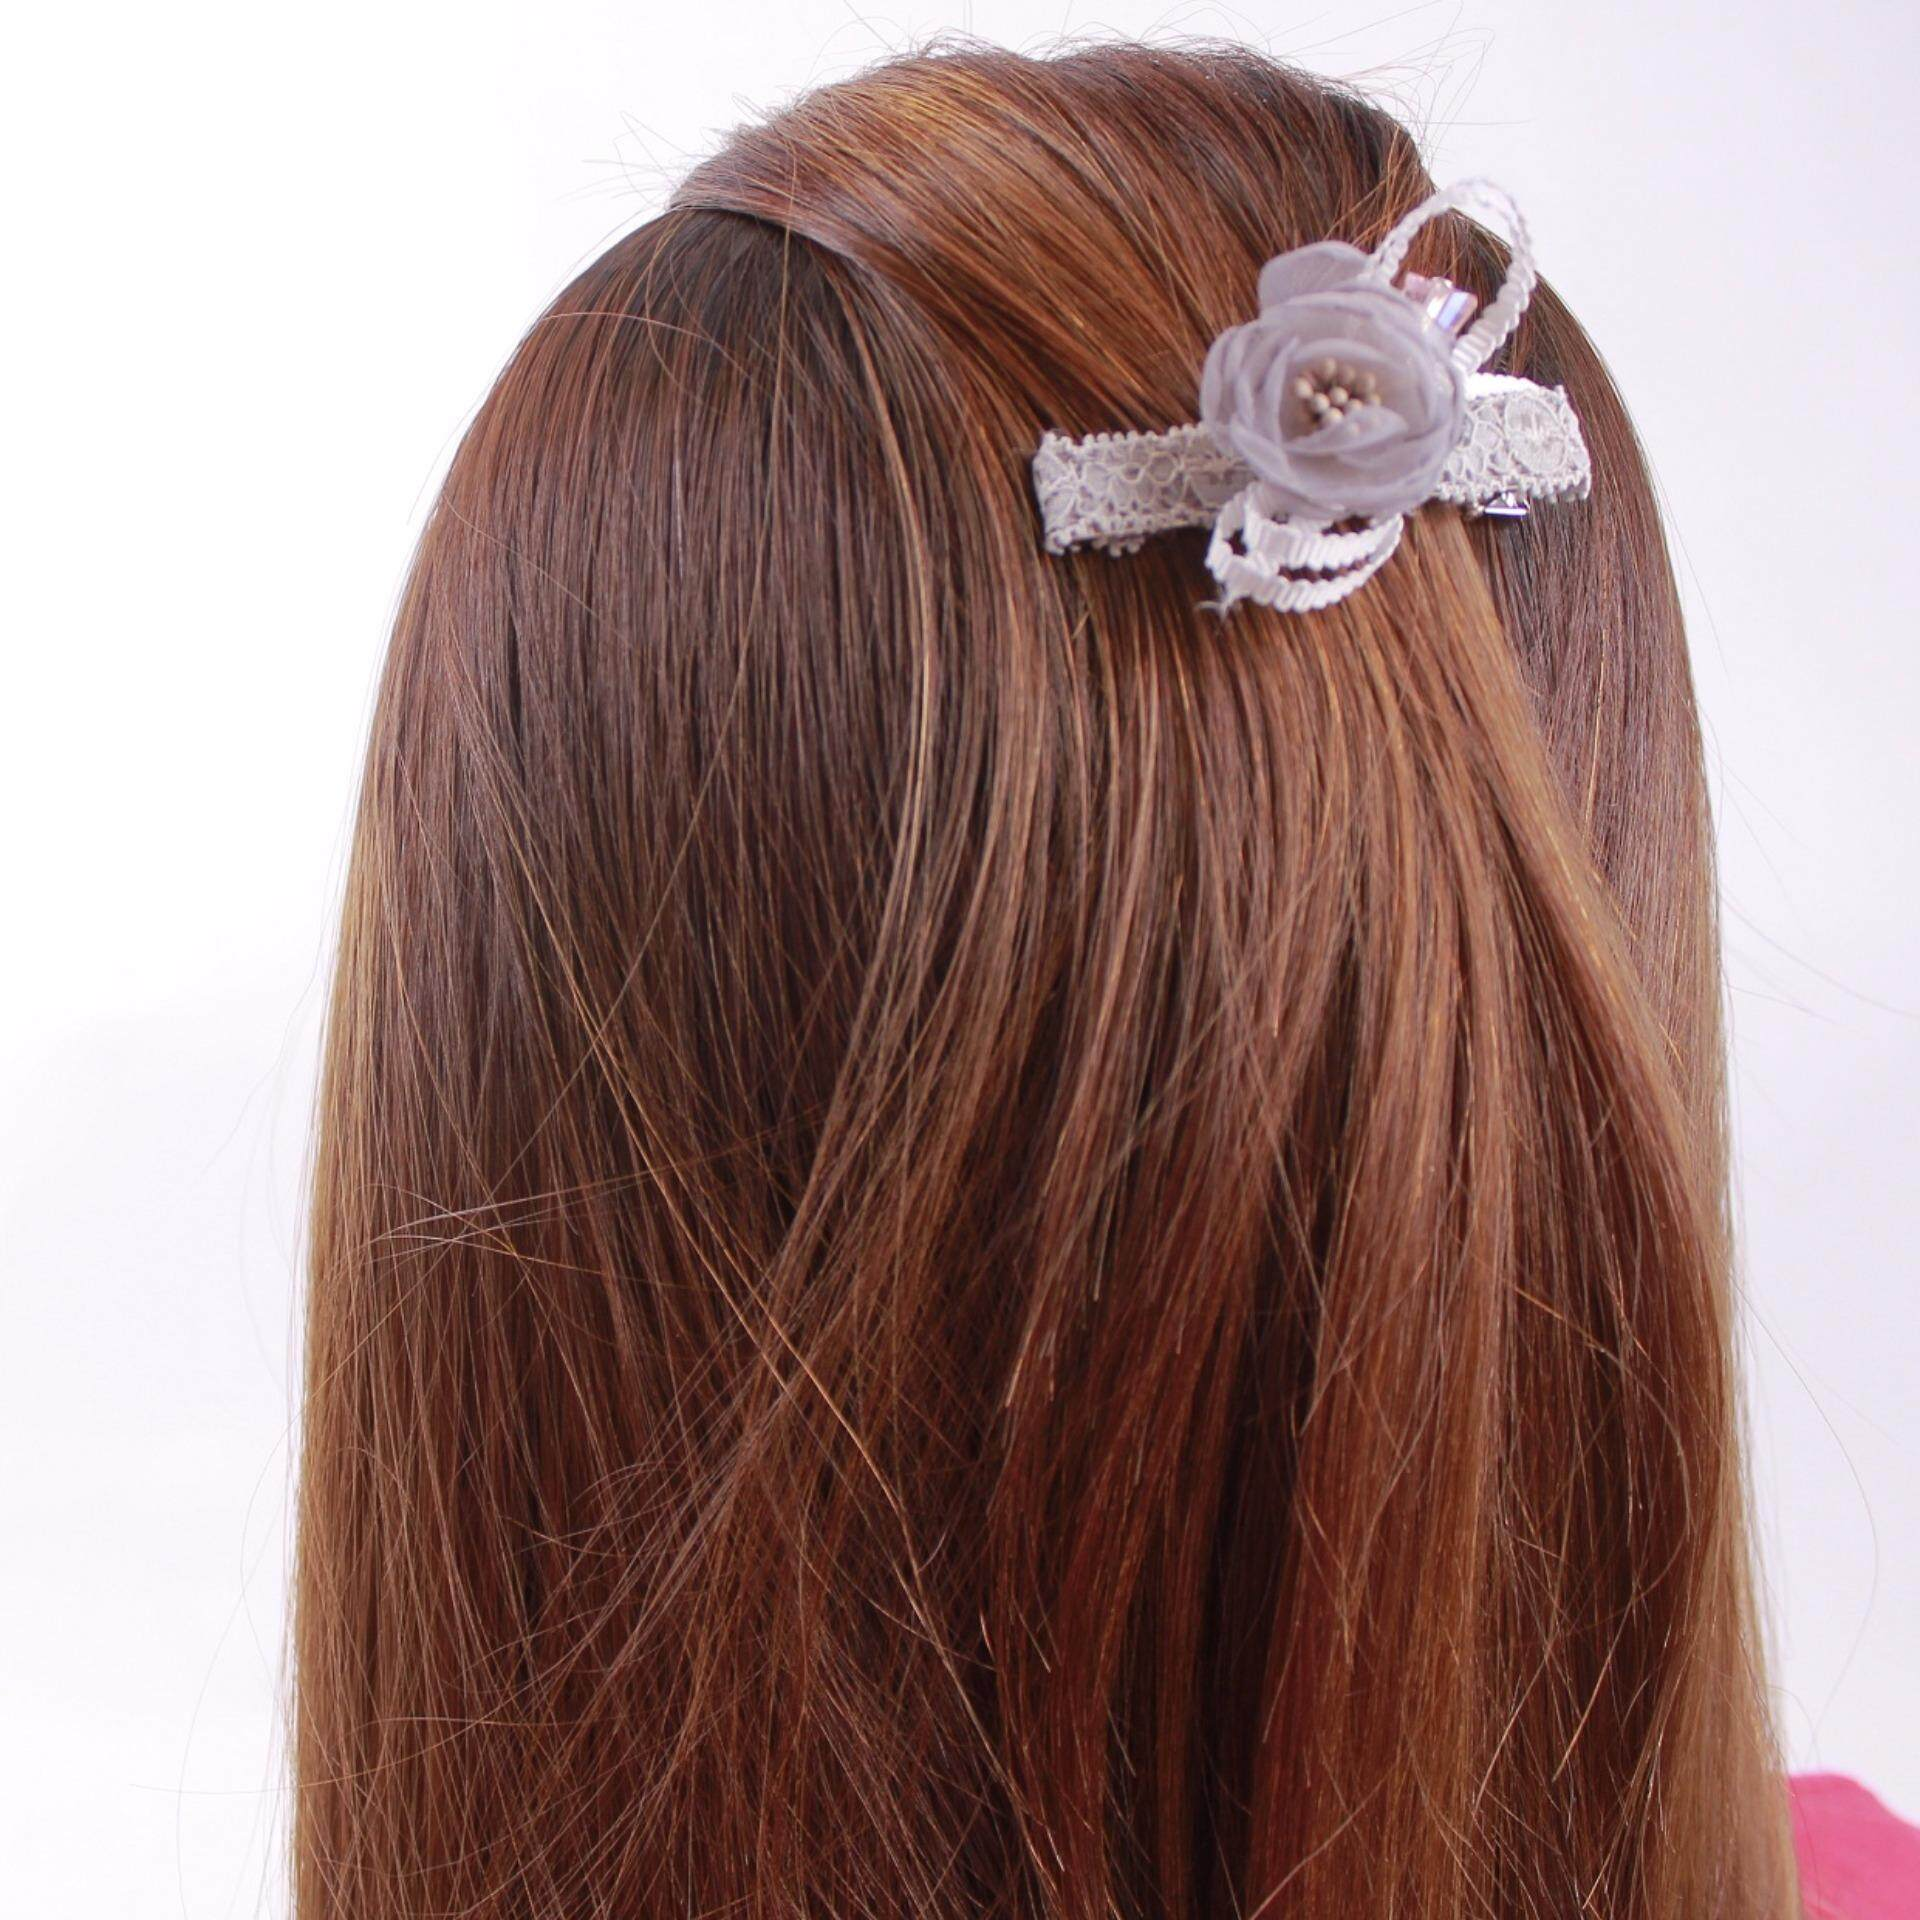 AFGY FGA 202G 70303 Hair Clip with Crystal Glass Jewel Accents (Length 6.5cm, Grey)